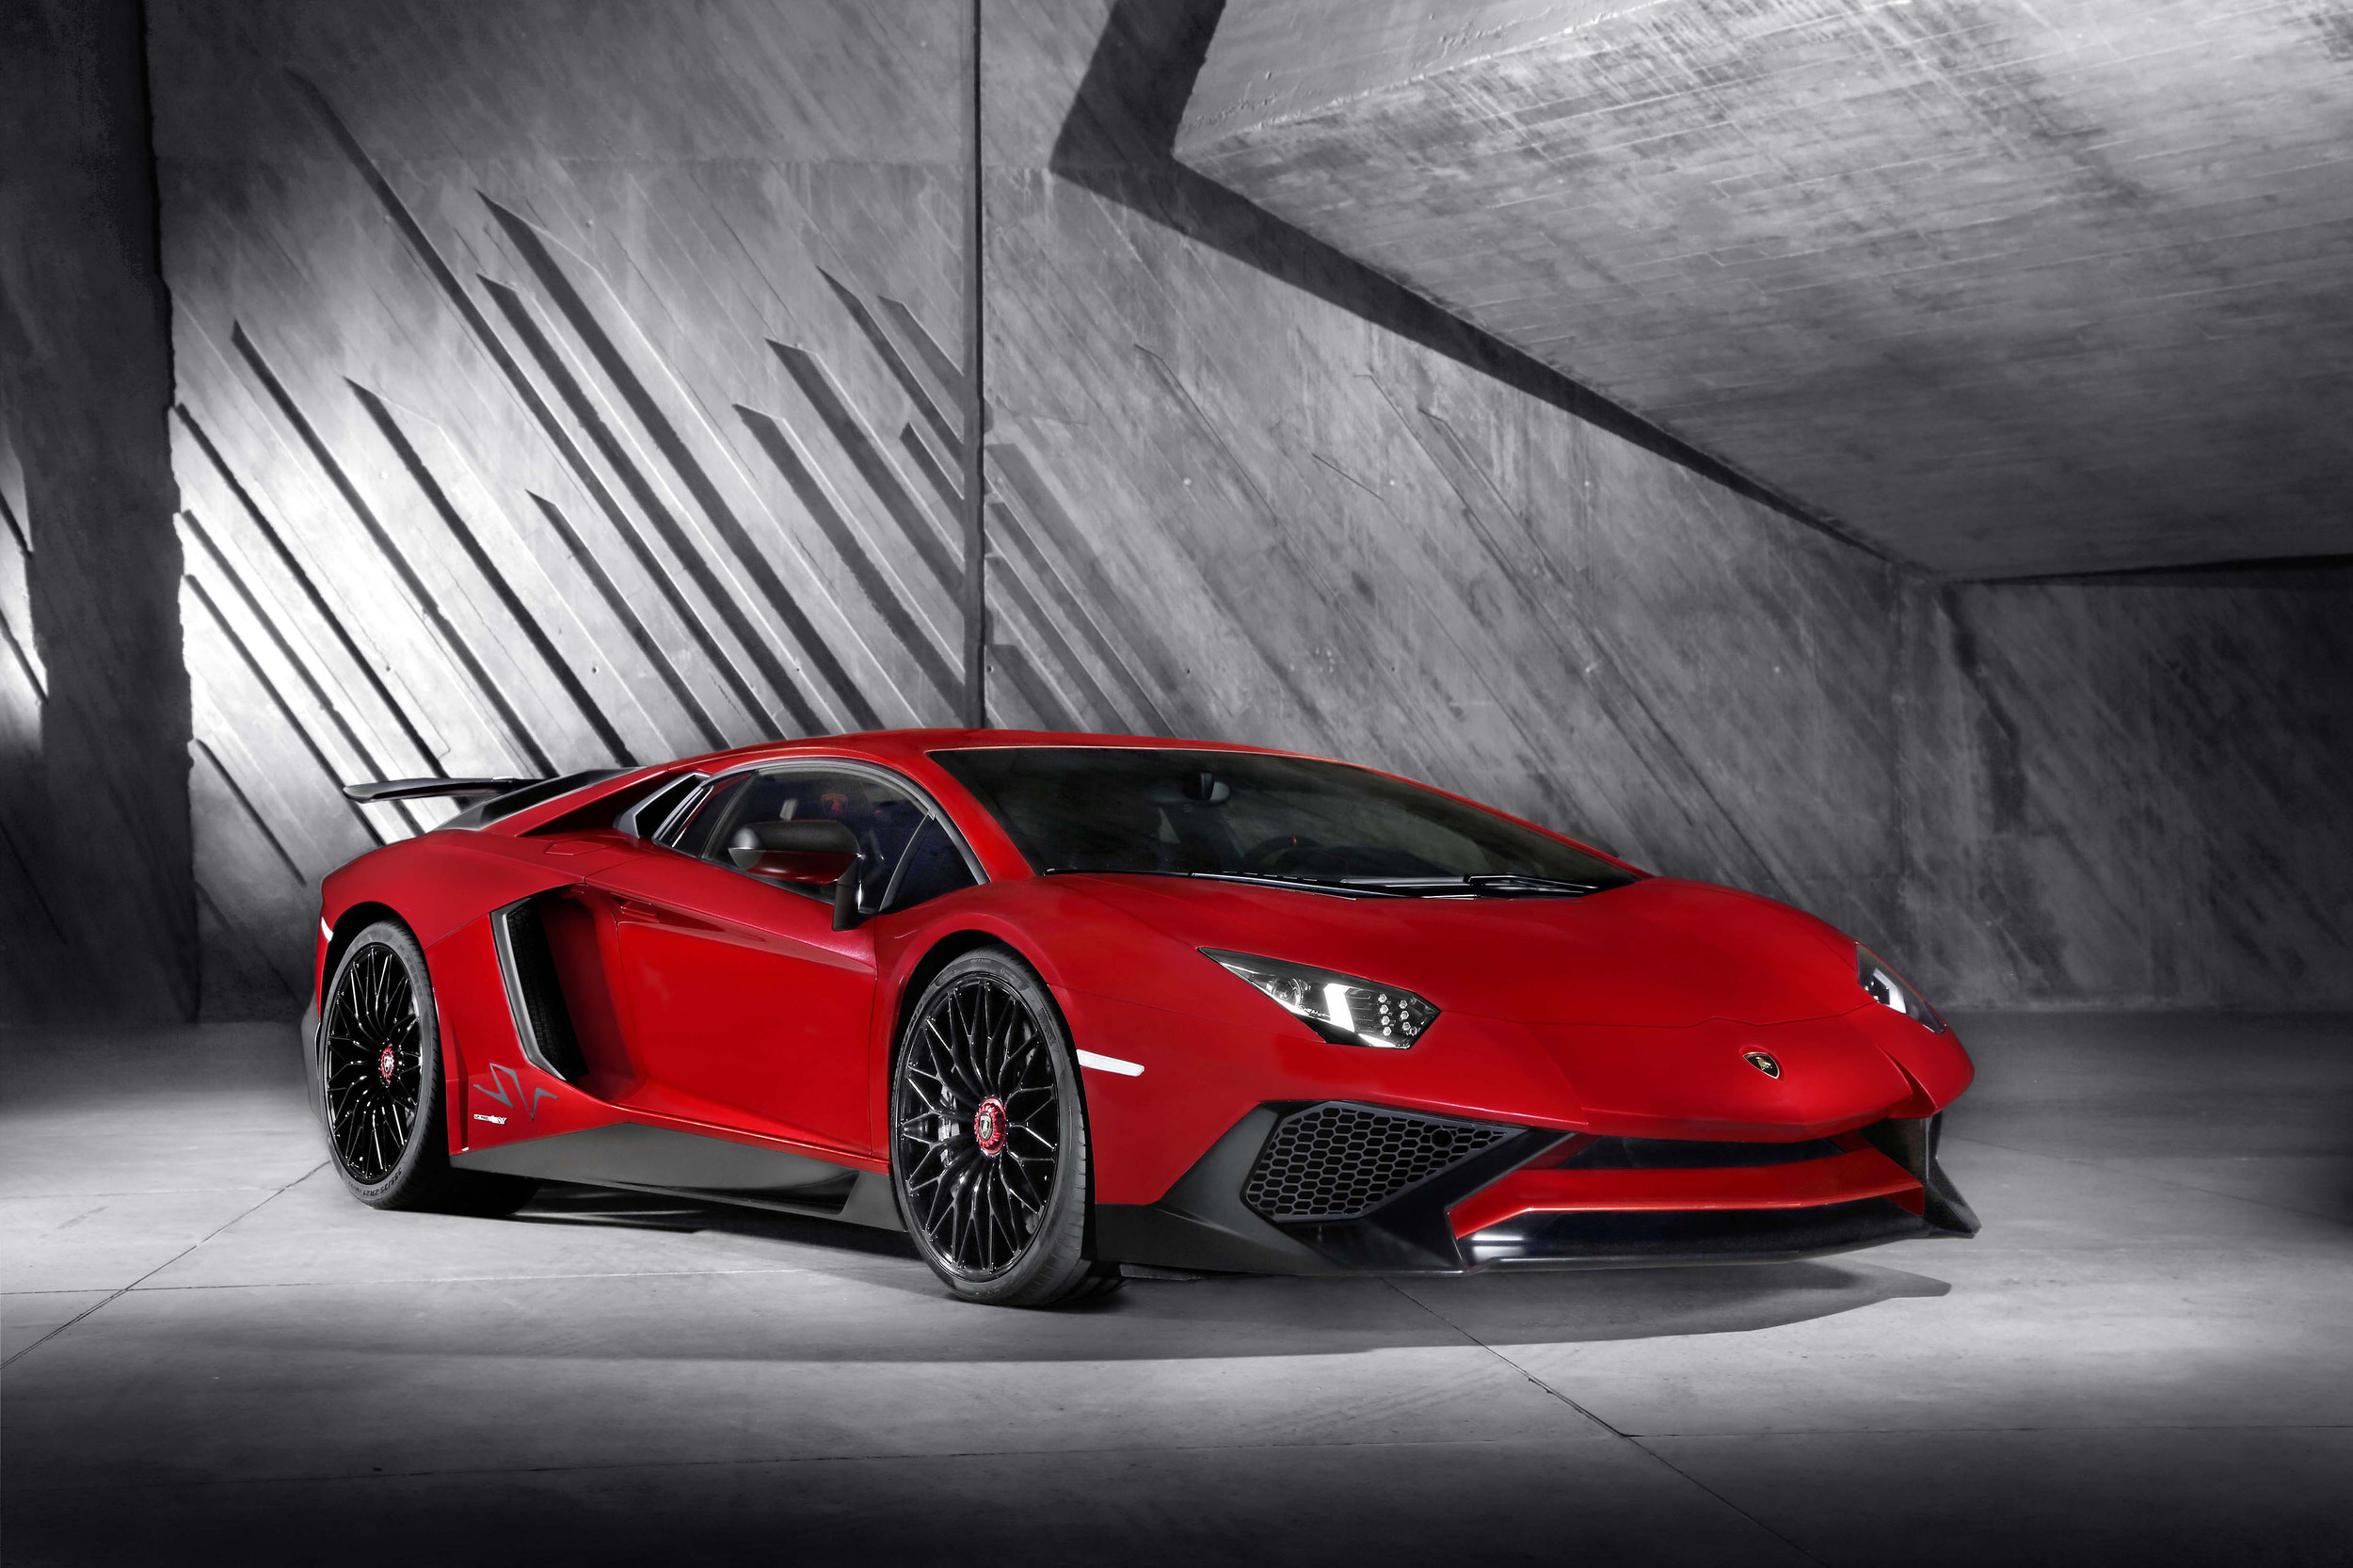 2015 geneva: the lamborghini aventador lp 750-4 sv is a more